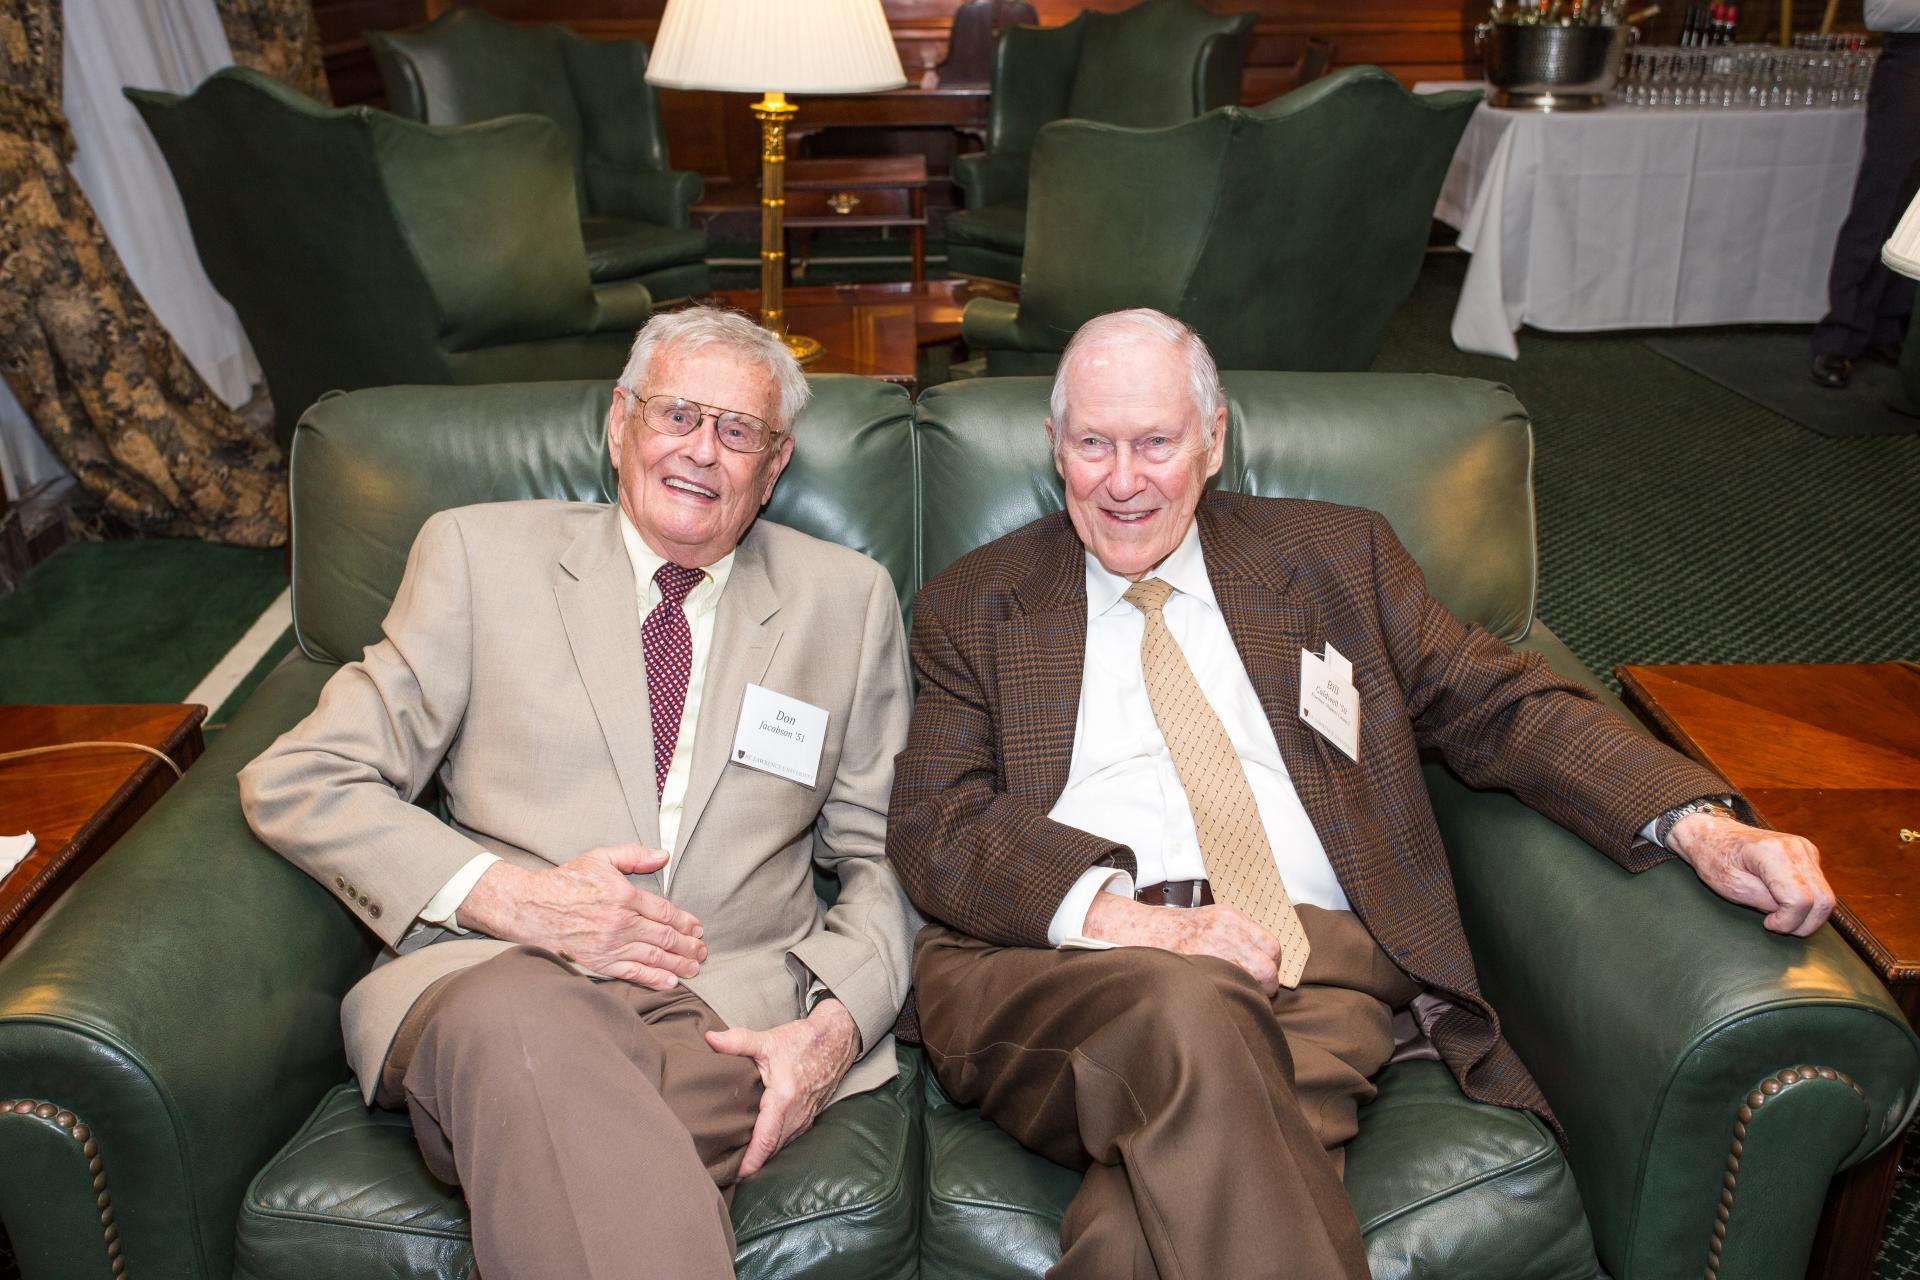 Don Jacobson �51 (left) comfortably enjoyed the company of his longtime friend Bill Caldwell �50.